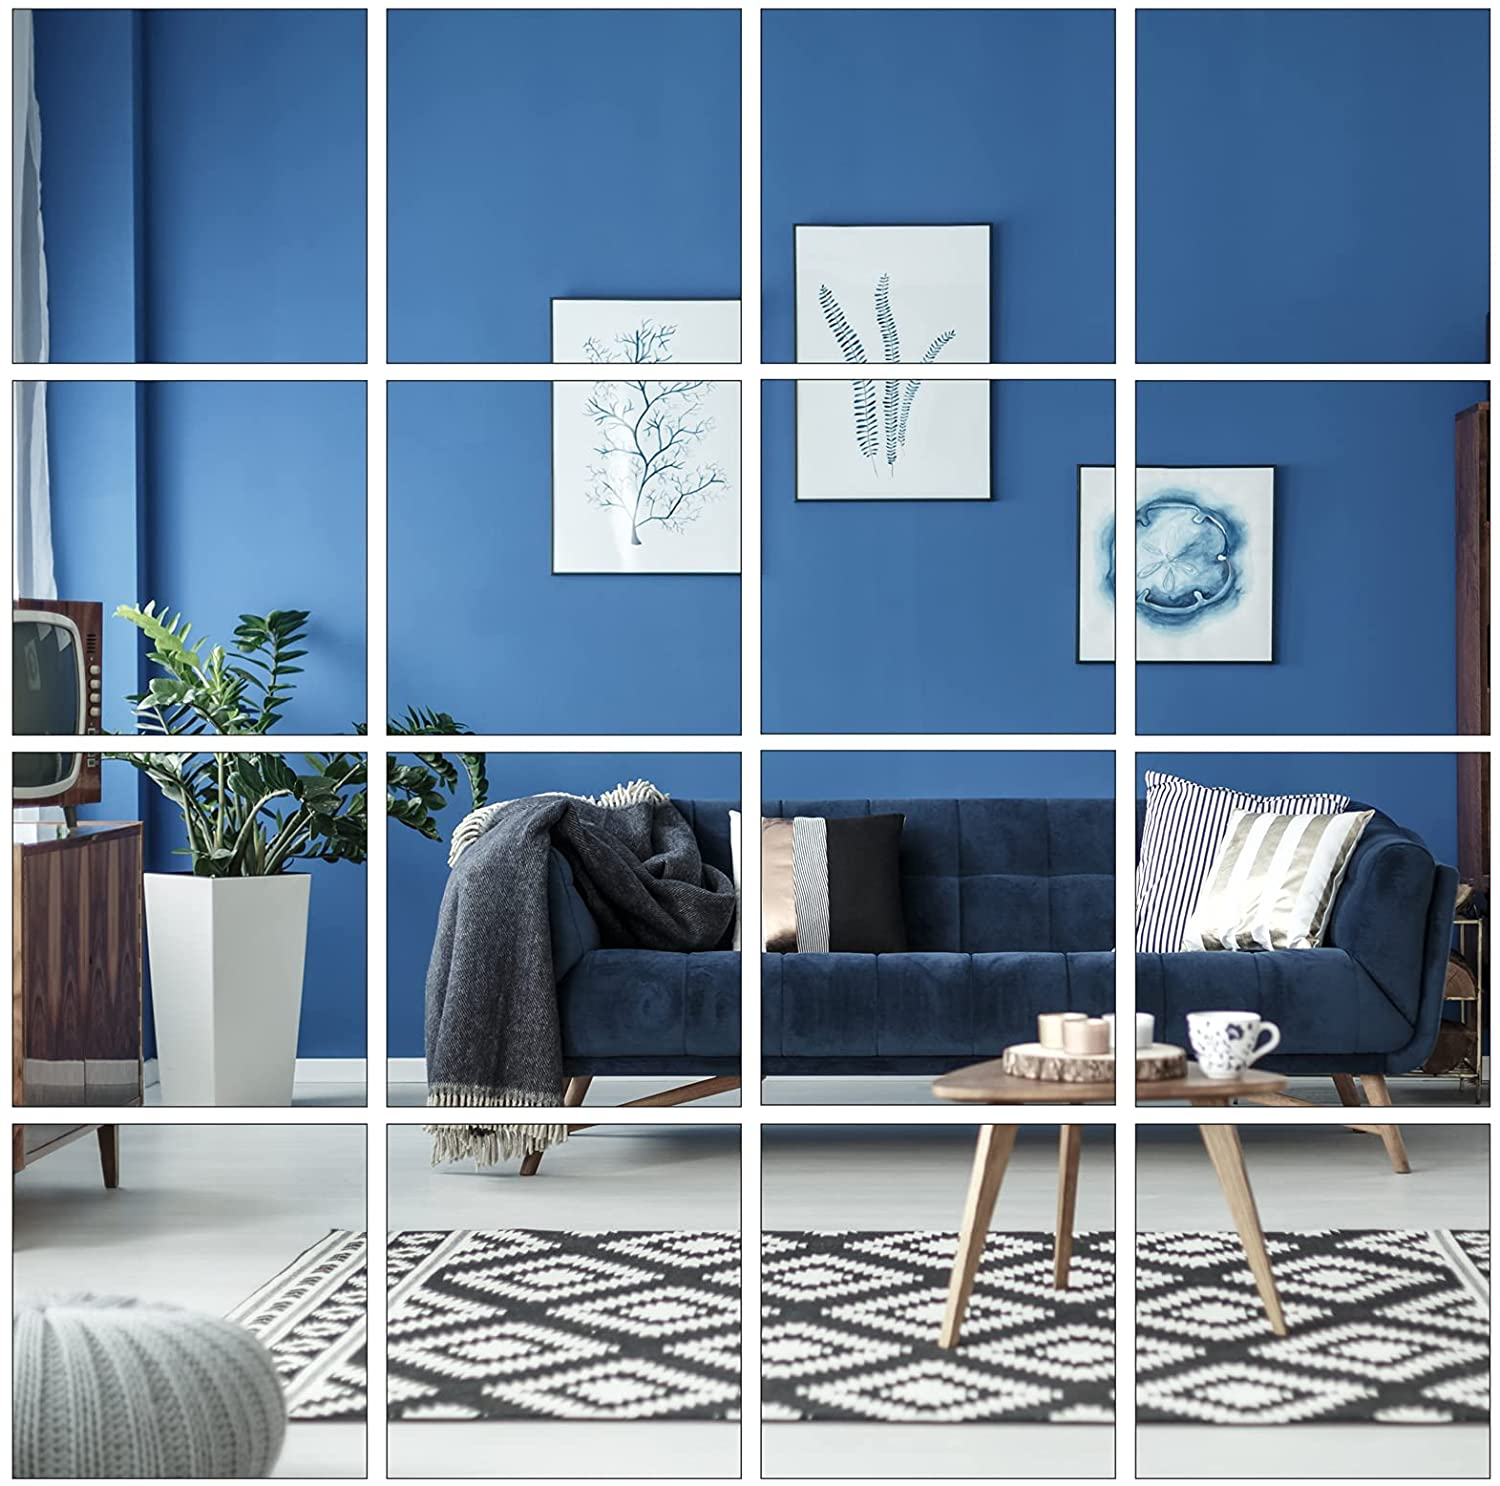 Aneco 16 Pack Removable Mirror Wall Sticker Self Adhesive Square Mirror DIY Wall Decorations for Home Room Decor, 4 x 4 inches